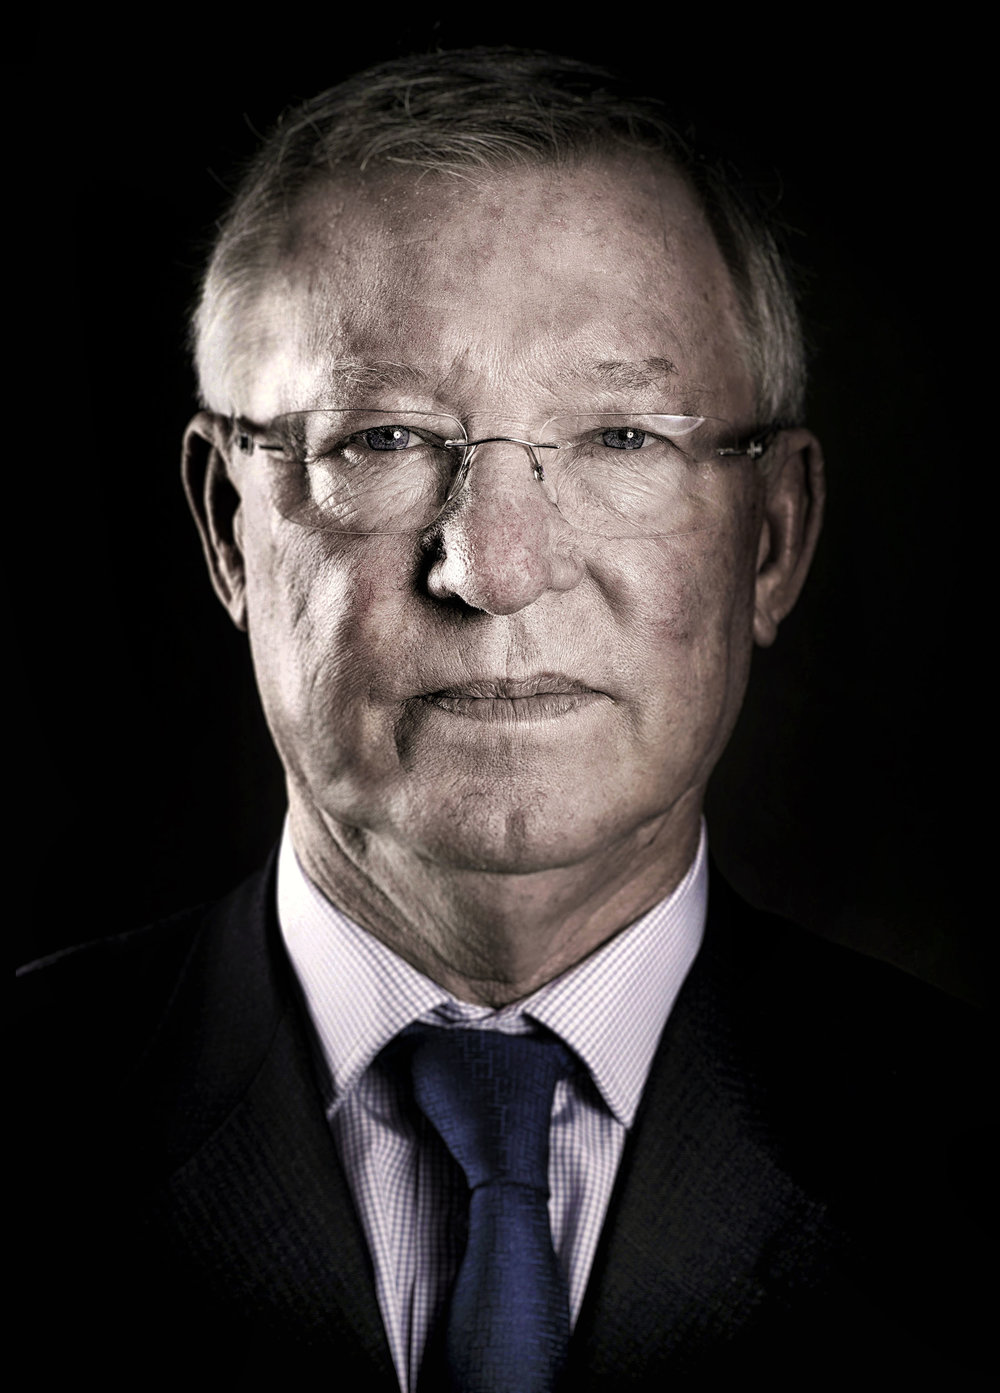 SIR ALEX FERGUSON PHOTOGRAPHED AT THE MOTTRAM HALL HOTEL FOR UEFA PHOTO CREDIT PUAL COOPER